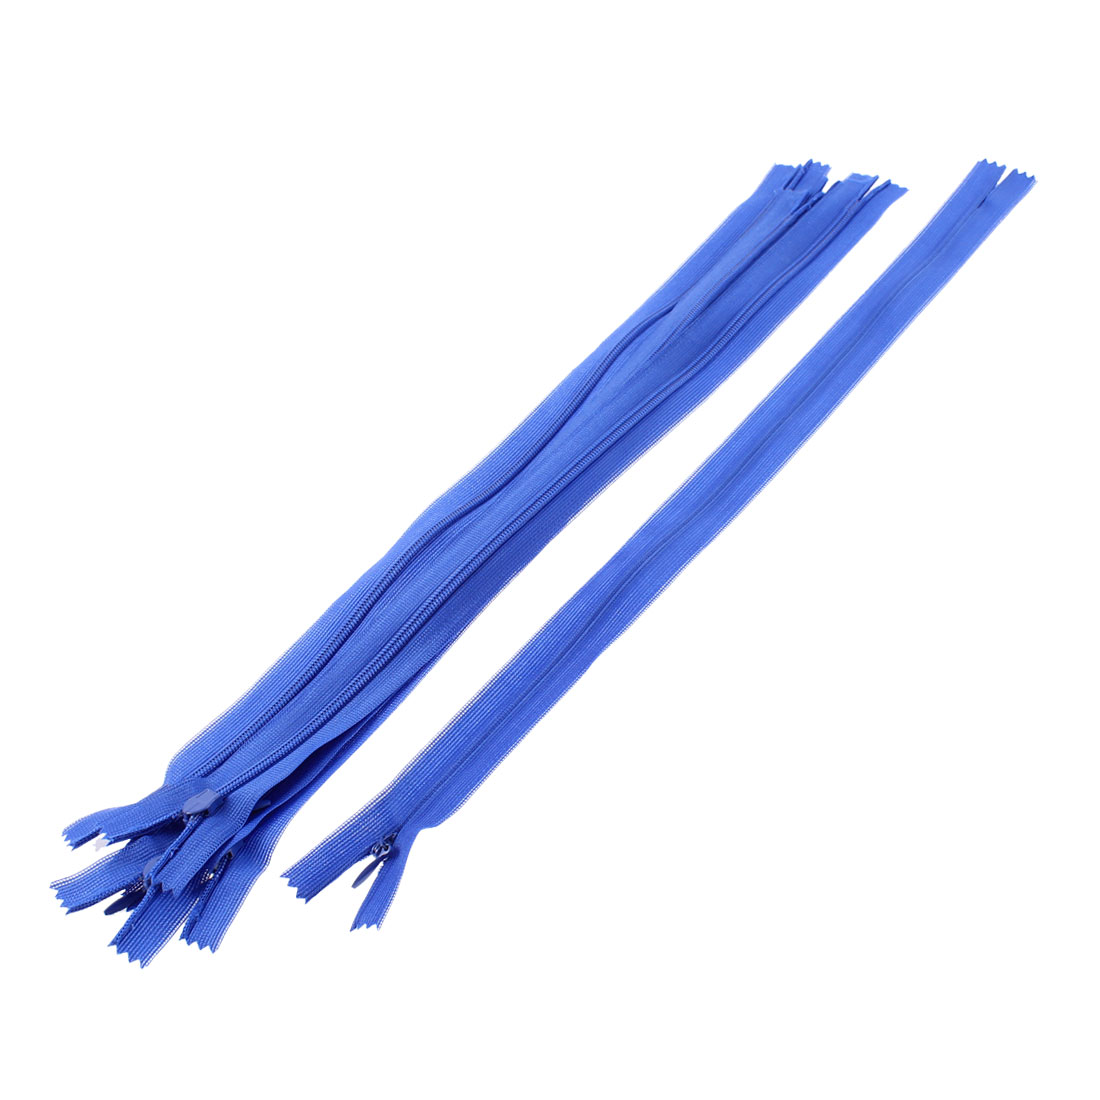 "Blue Nylon Invisible Concealed Zipper 14"" Long 5 Pcs"